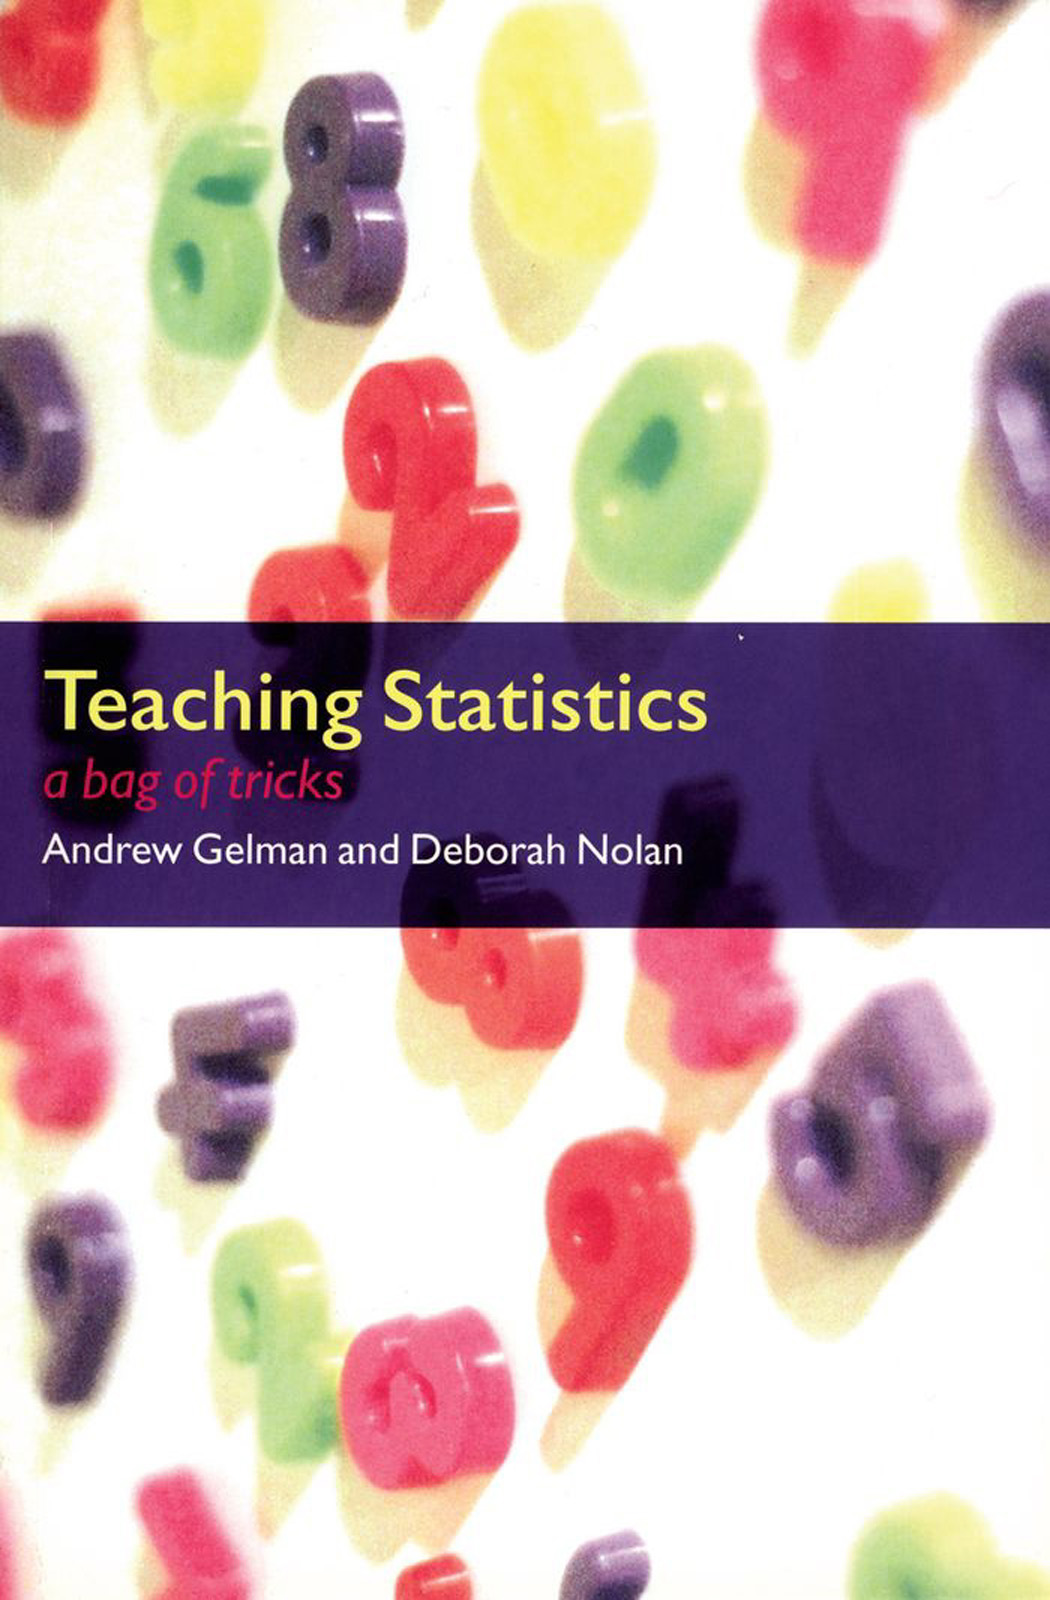 Teaching Statistics: A Bag of Tricks